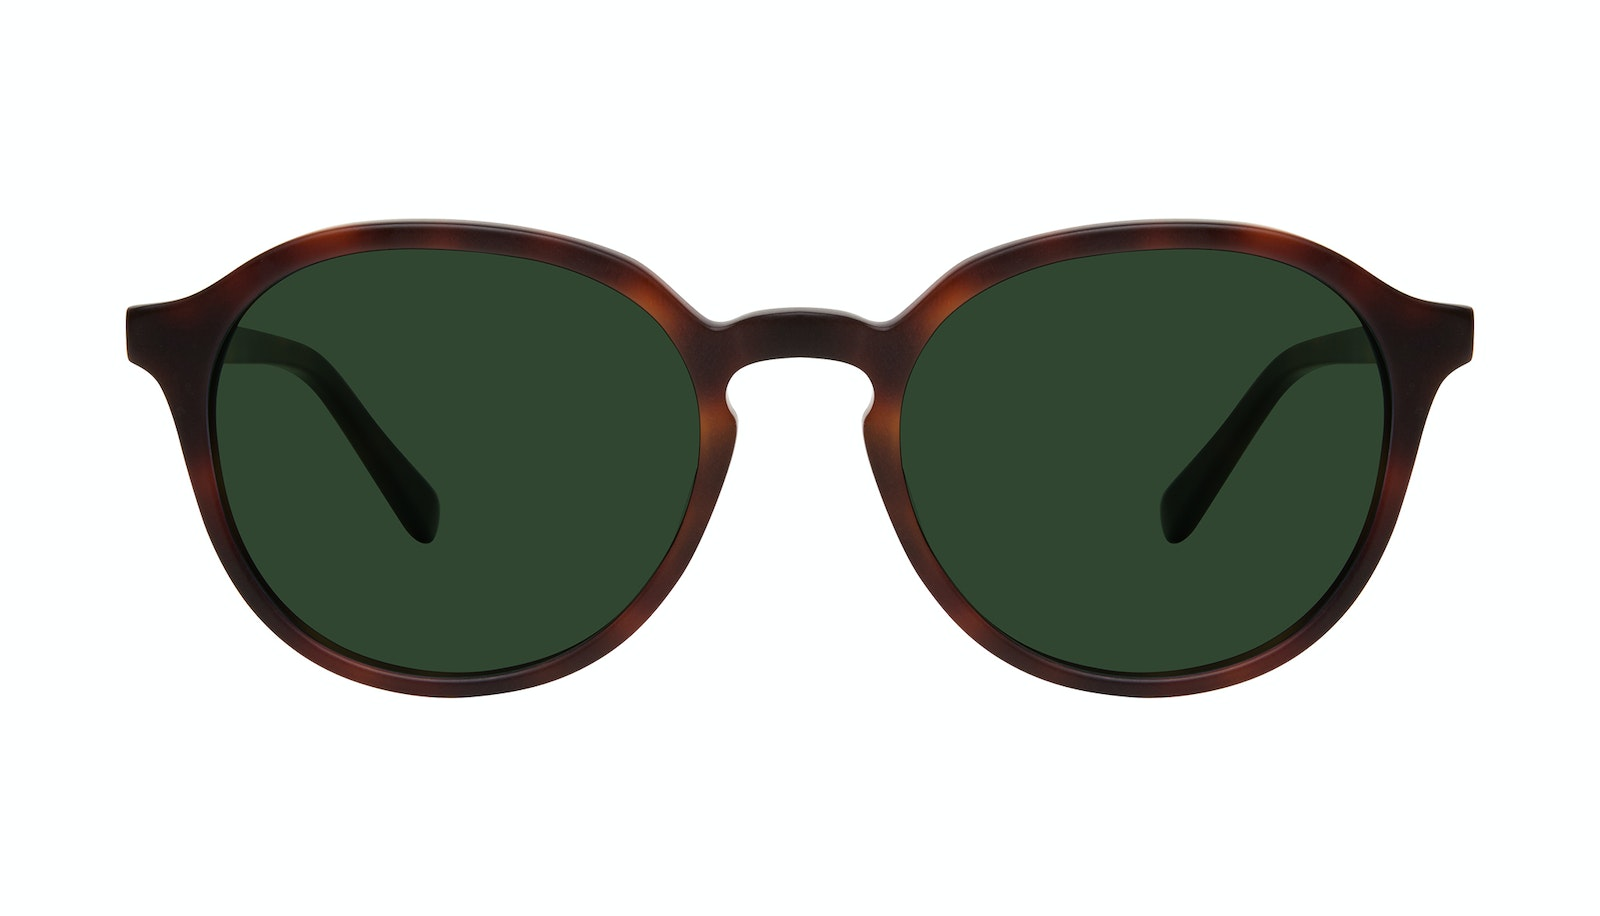 Affordable Fashion Glasses Round Sunglasses Men Ansel Matte Tortoise